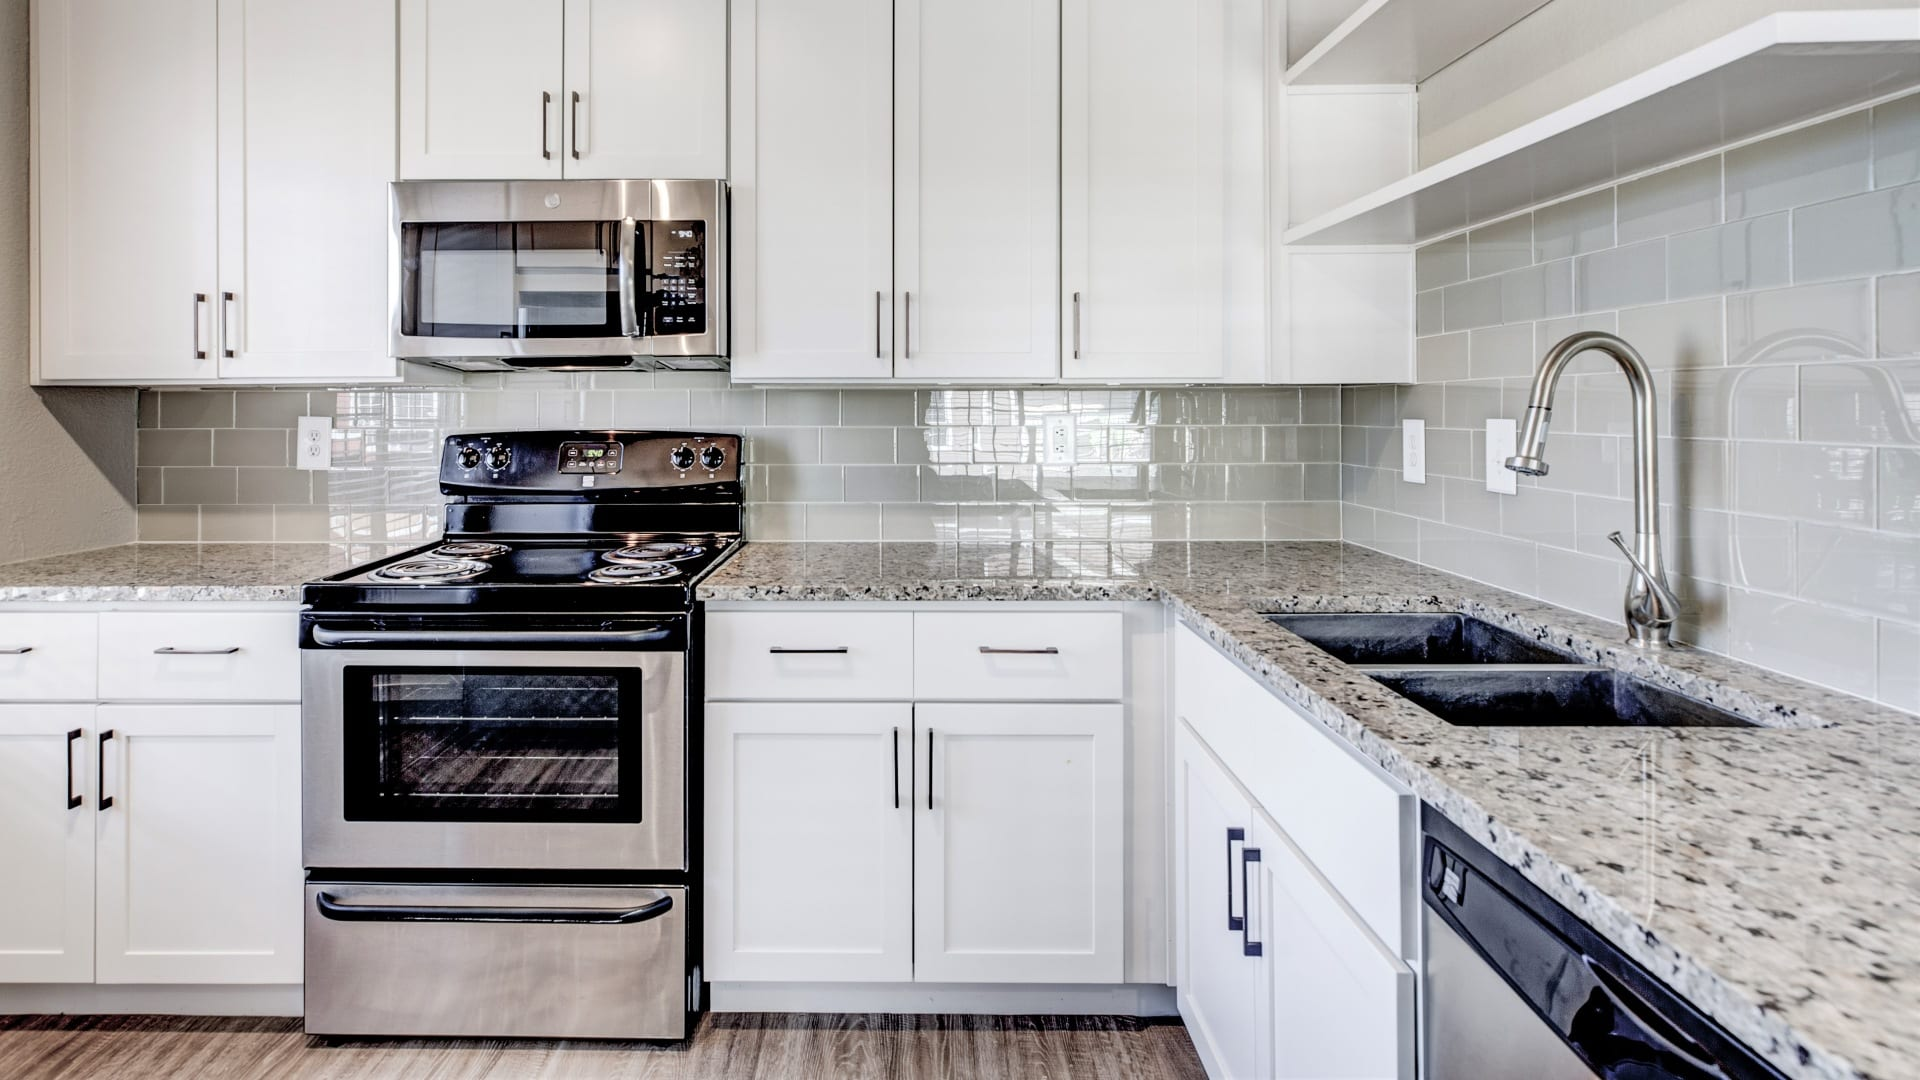 Kitchen with white cabinets at our modern apartments in Cherry Creek, CO